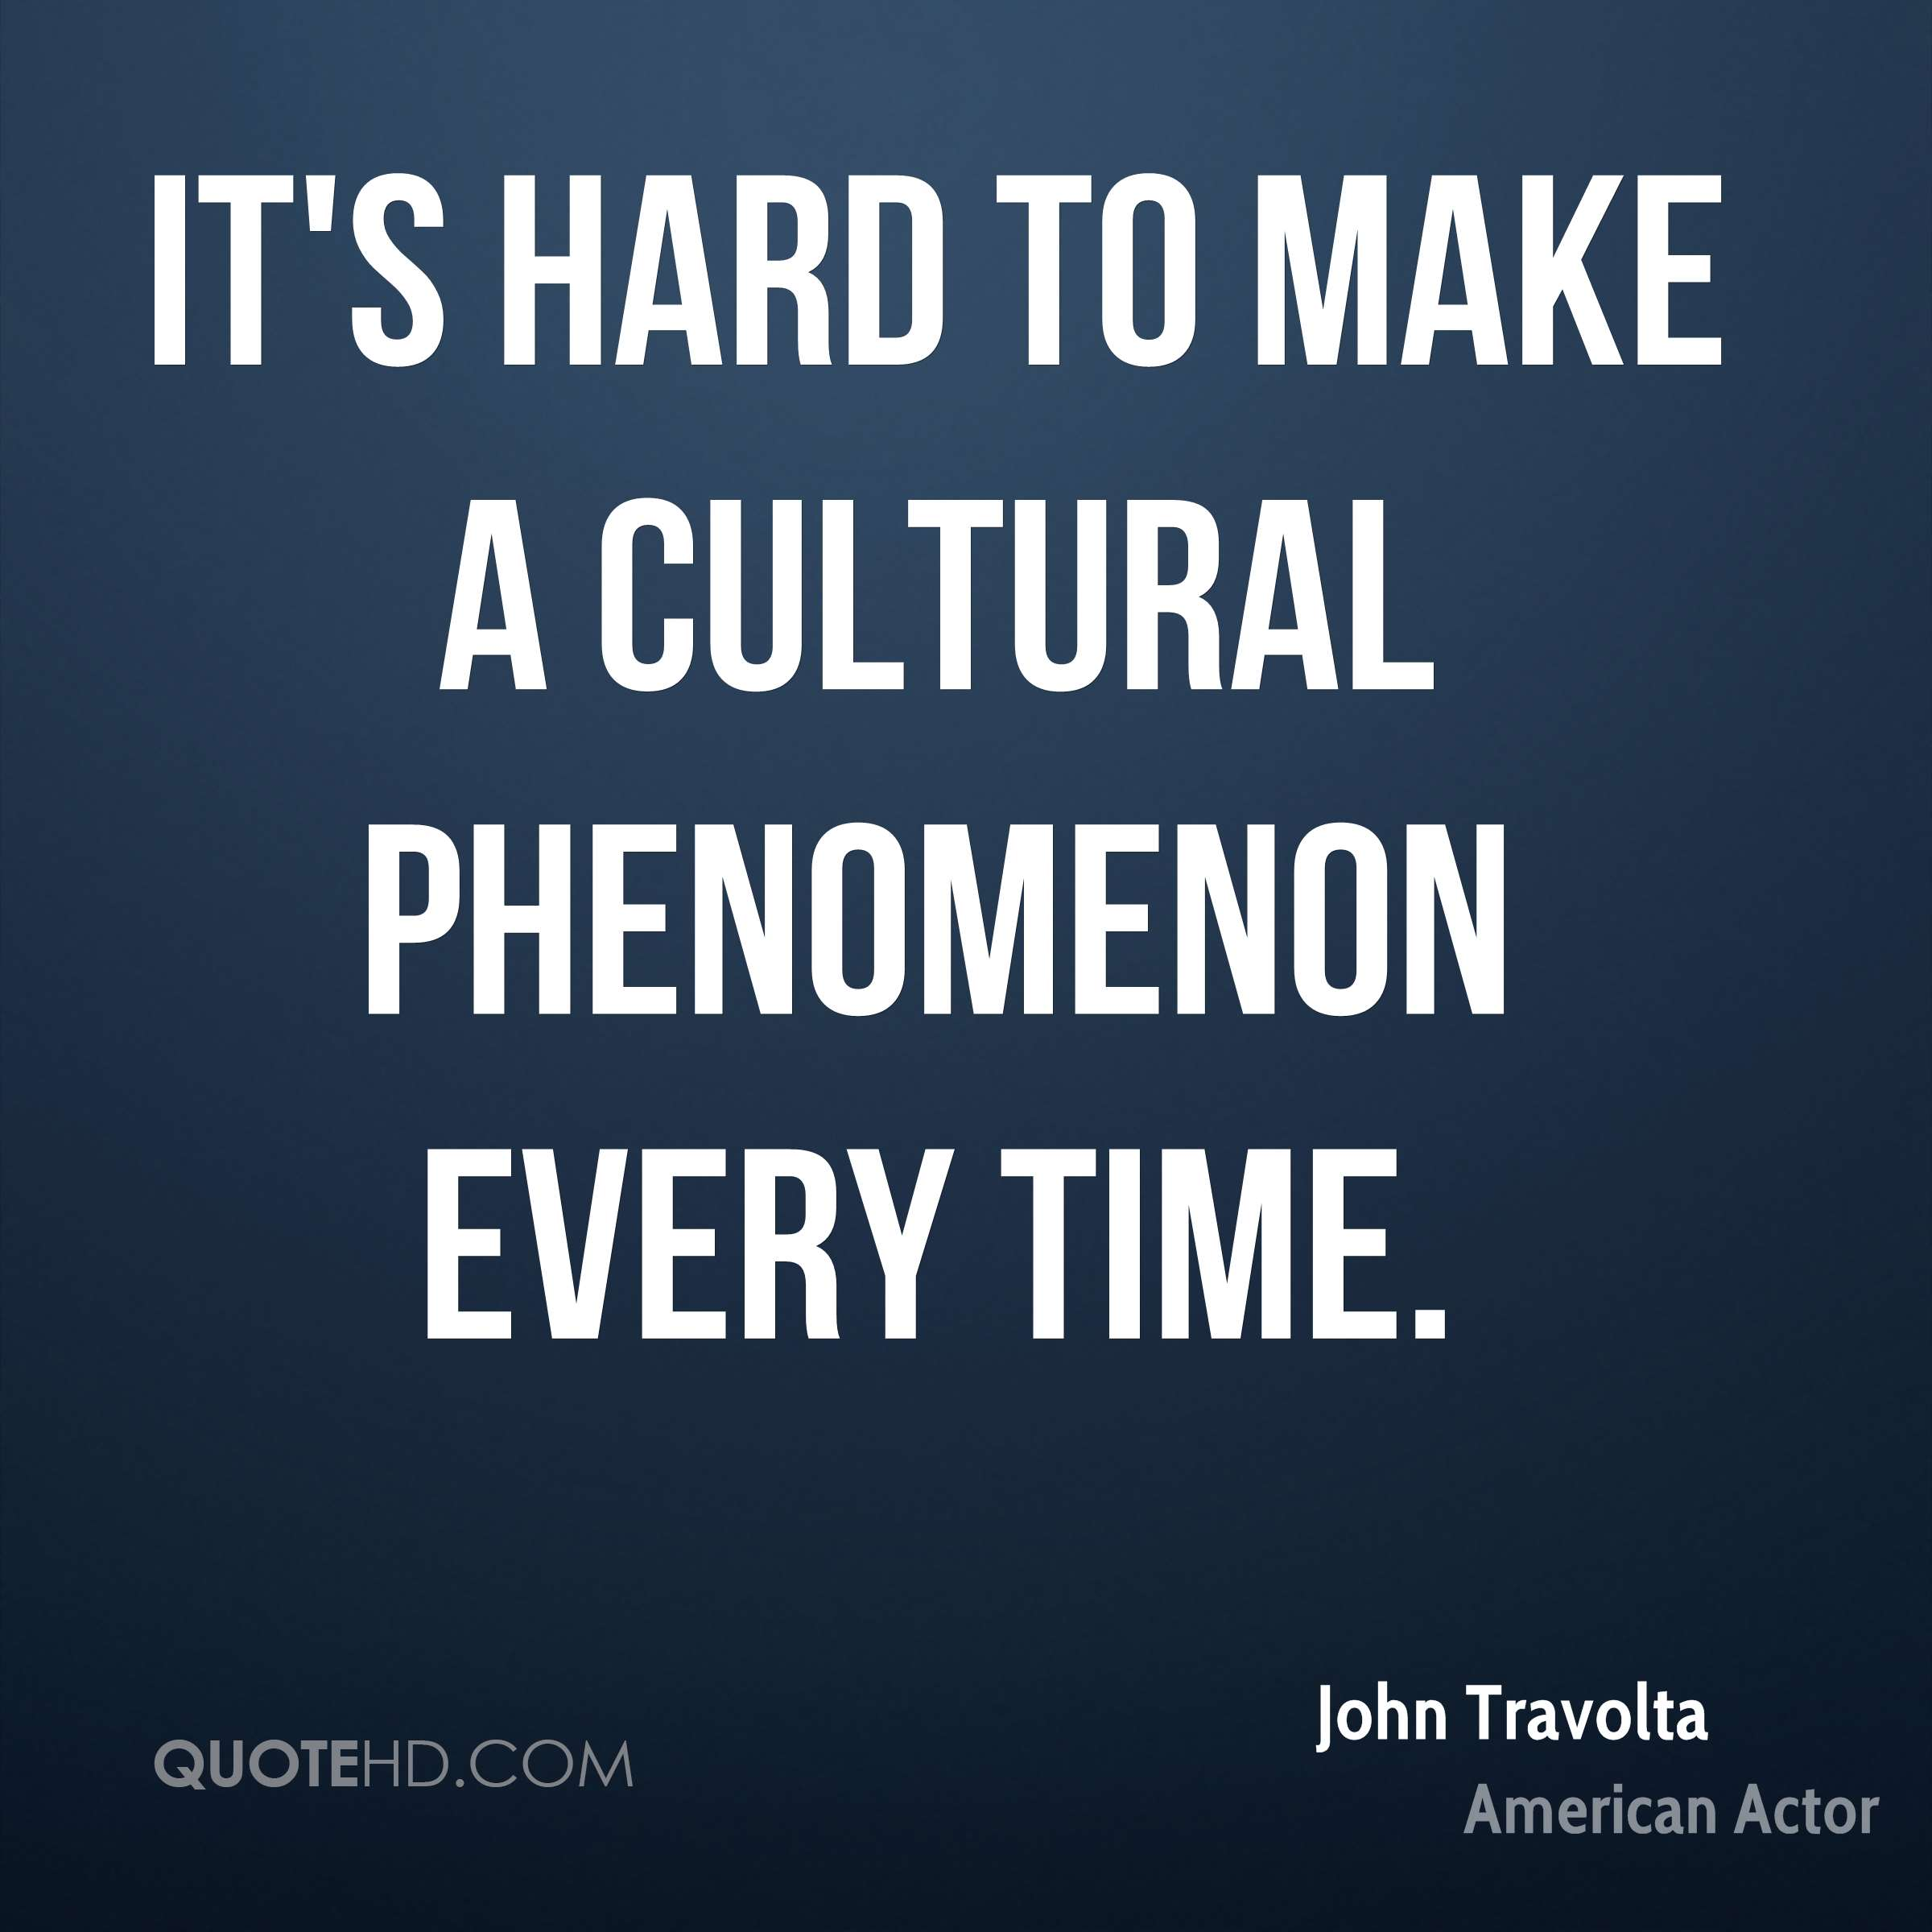 It's hard to make a cultural phenomenon every time.